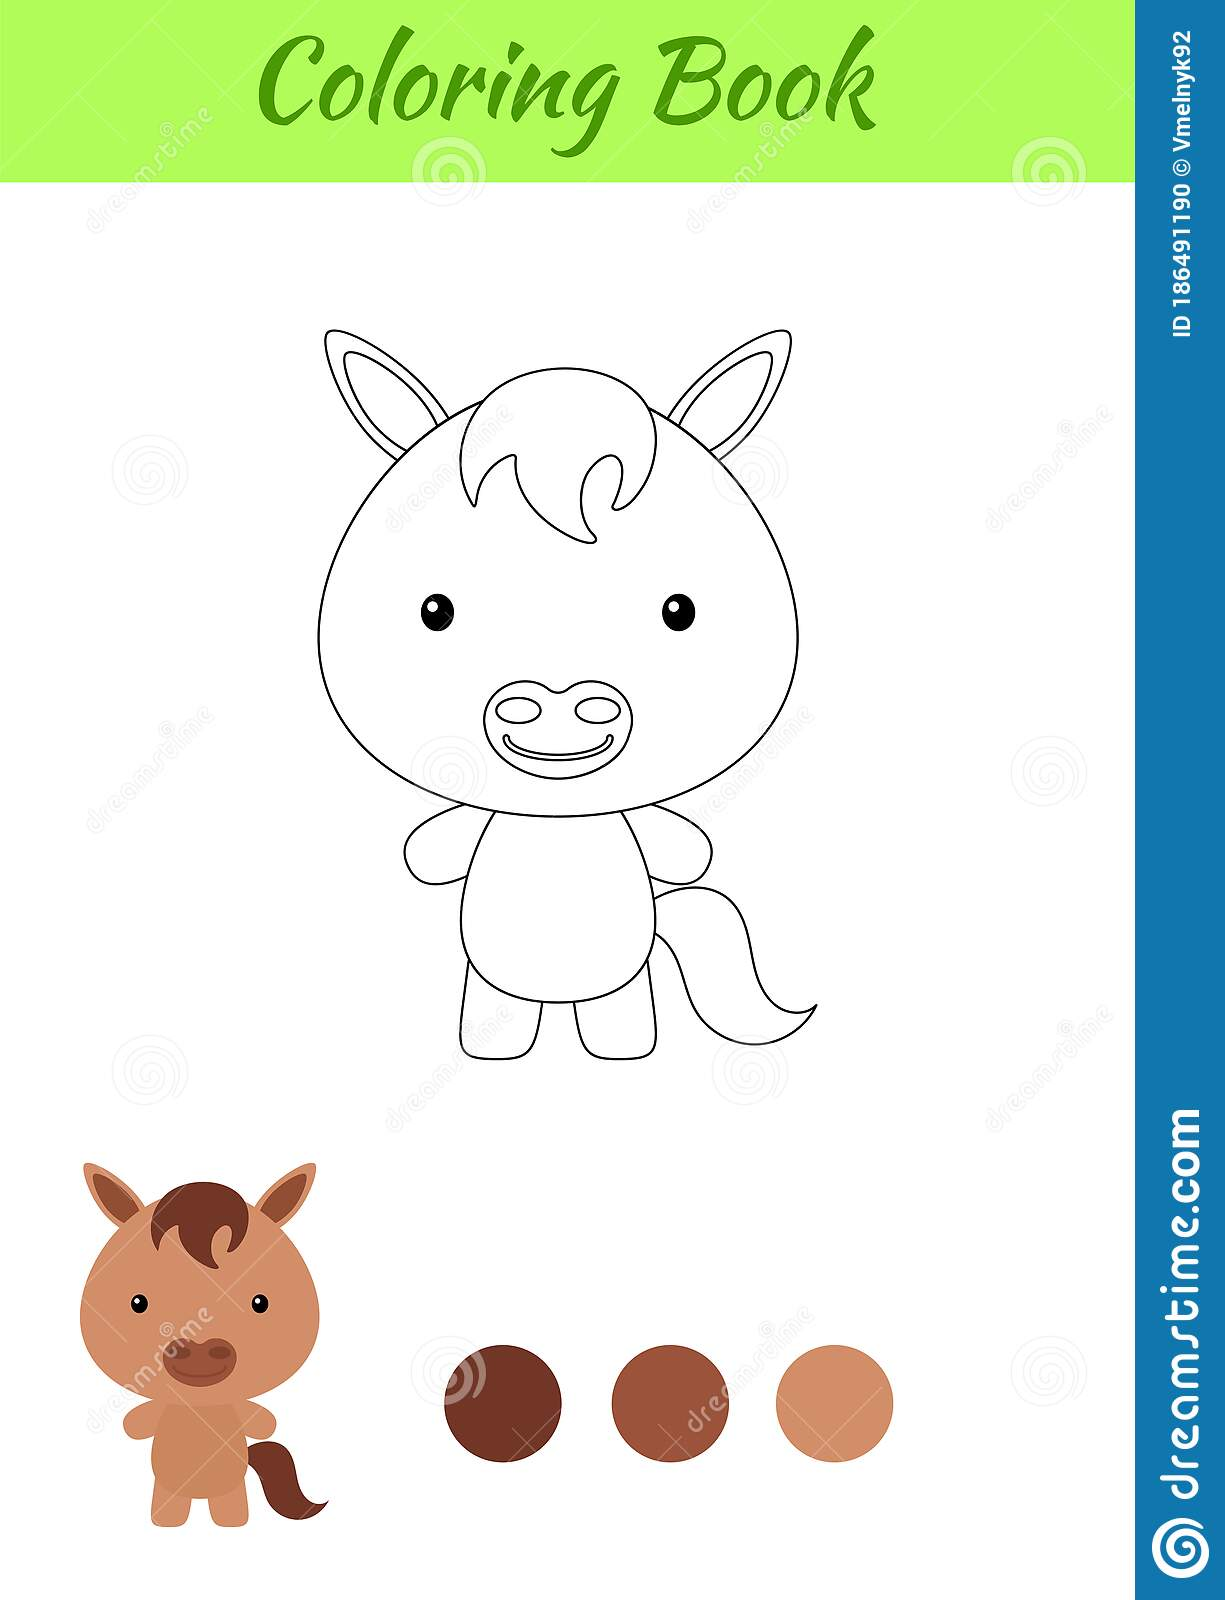 Coloring Page Happy Little Baby Horse Coloring Book For Kids Educational Activity For Preschool Years Kids And Toddlers With Stock Vector Illustration Of Coloring Color 186491190